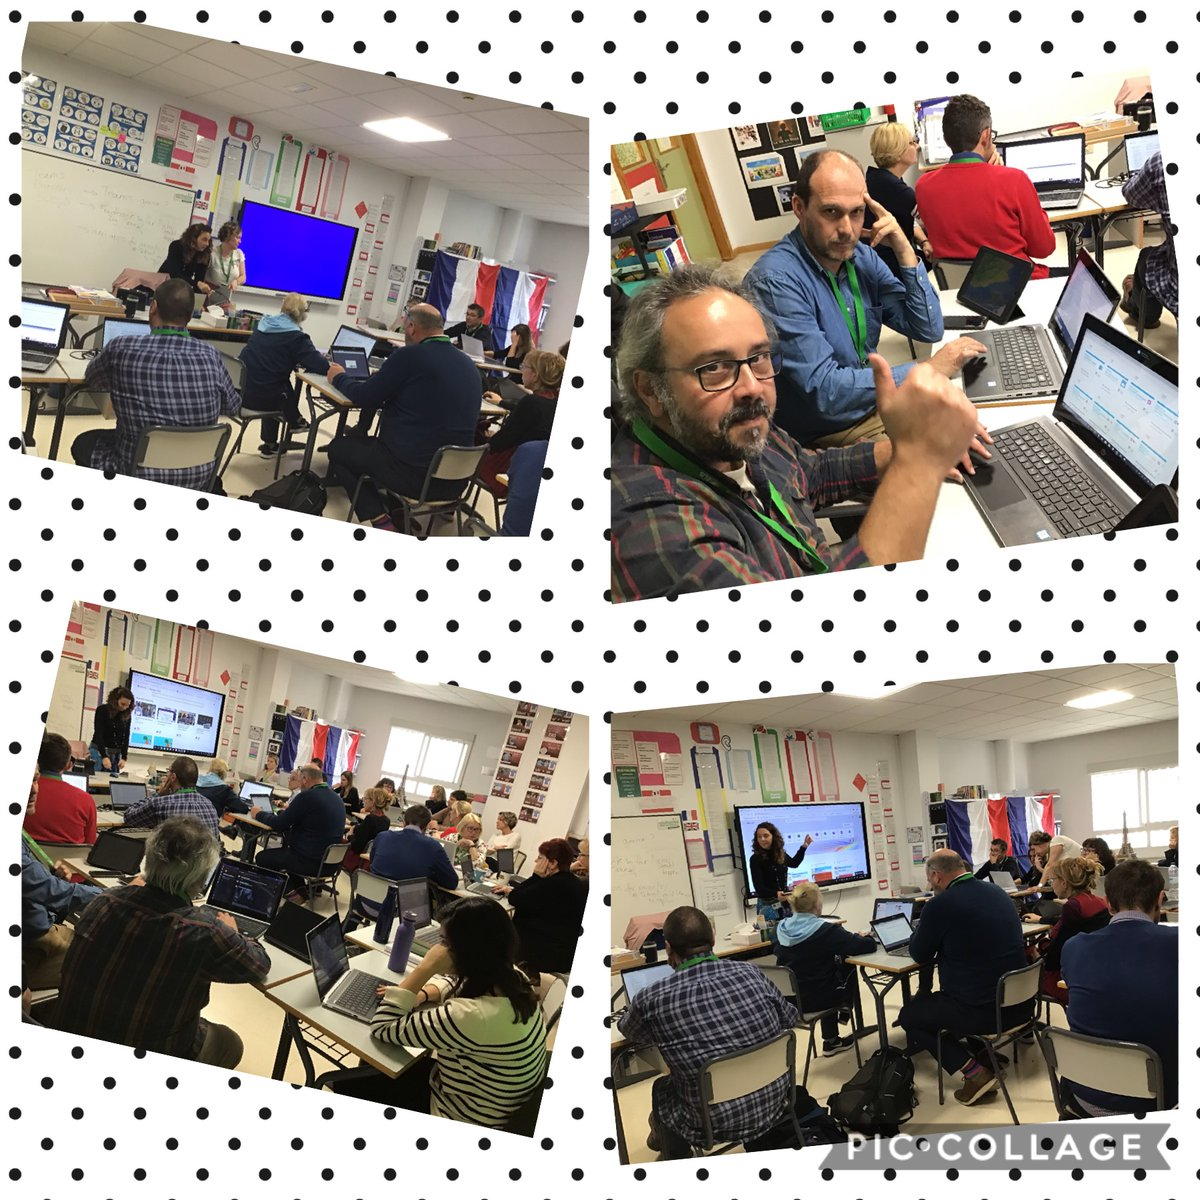 """And this 👇🏼...is what we do """"in our spare time"""" 😂 @TLegidos @DaviniaAsuar #ELISWay #CognitaWay @SMART_Tech @msonenote @Seesaw"""